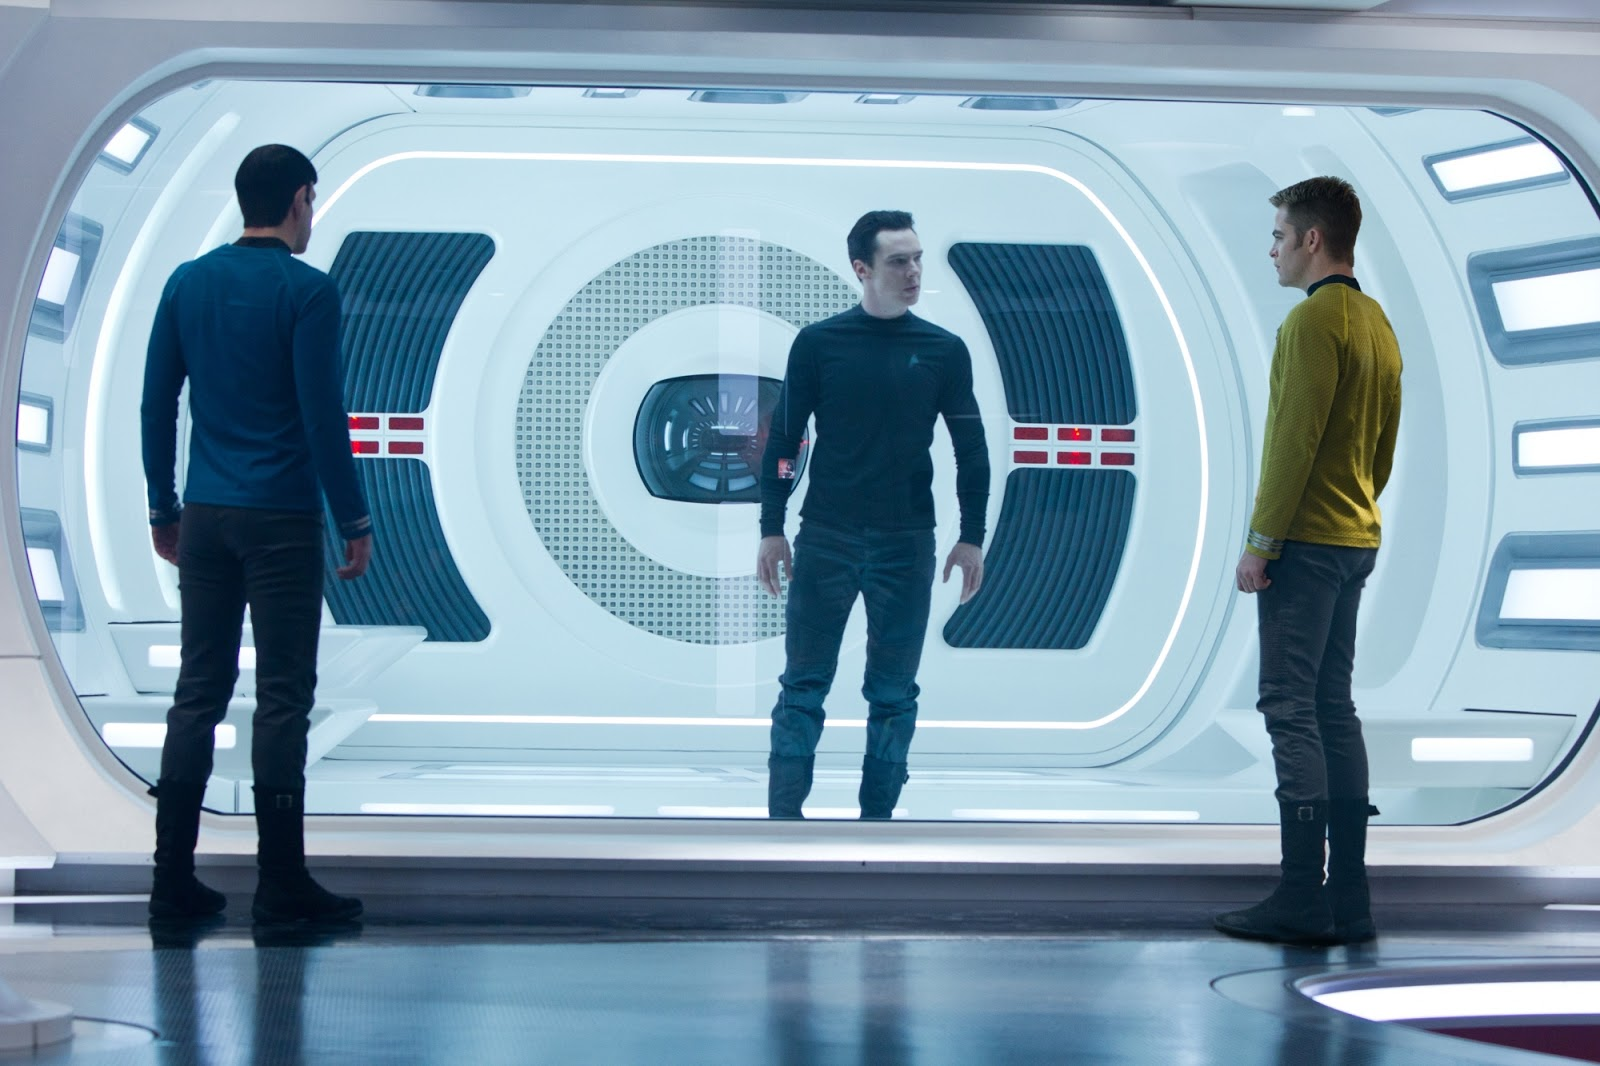 Spock (Zachary Quinto) and Captain Kirk (Chris Pine) confront an imprisoned Khan (Benedict Cumberbatch) in Star Trek Into Darkness (2013)